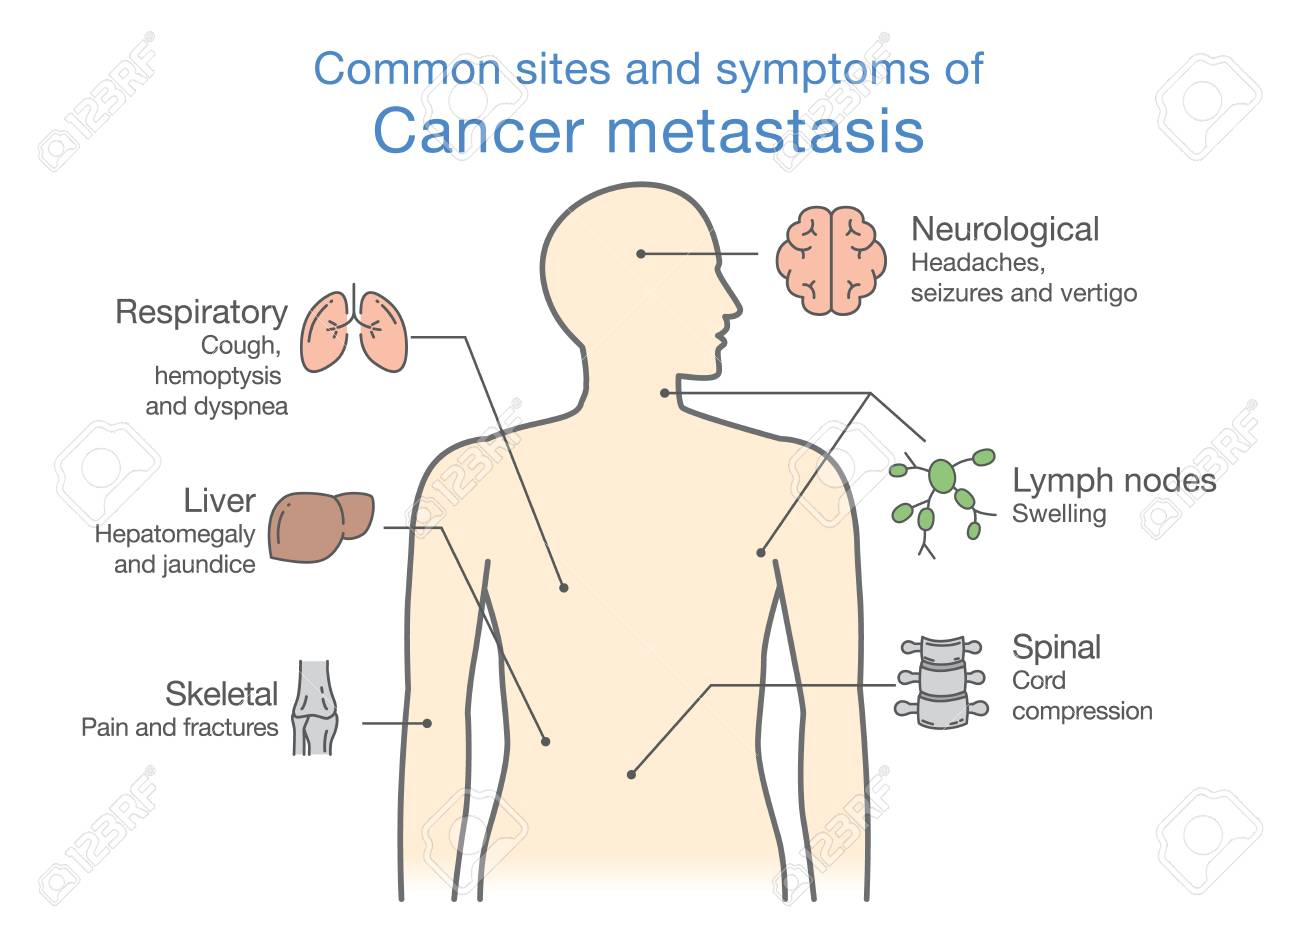 hight resolution of most common sites and symptoms of cancer metastasis illustration about medical diagram of deadly diseases